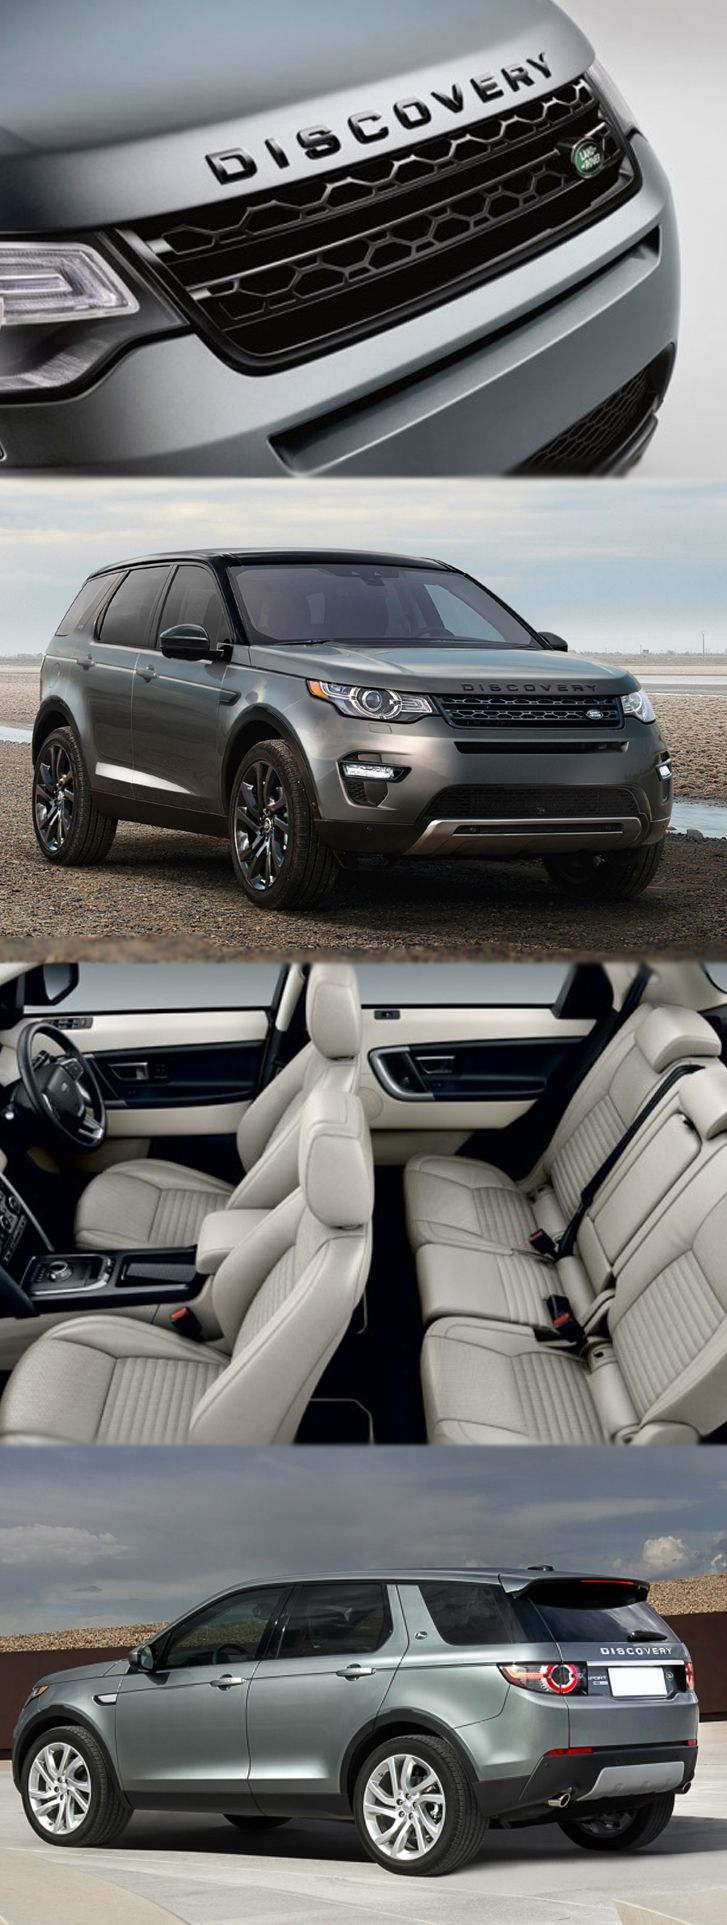 The discovery sport family suv that never forgets for more detail please visit https